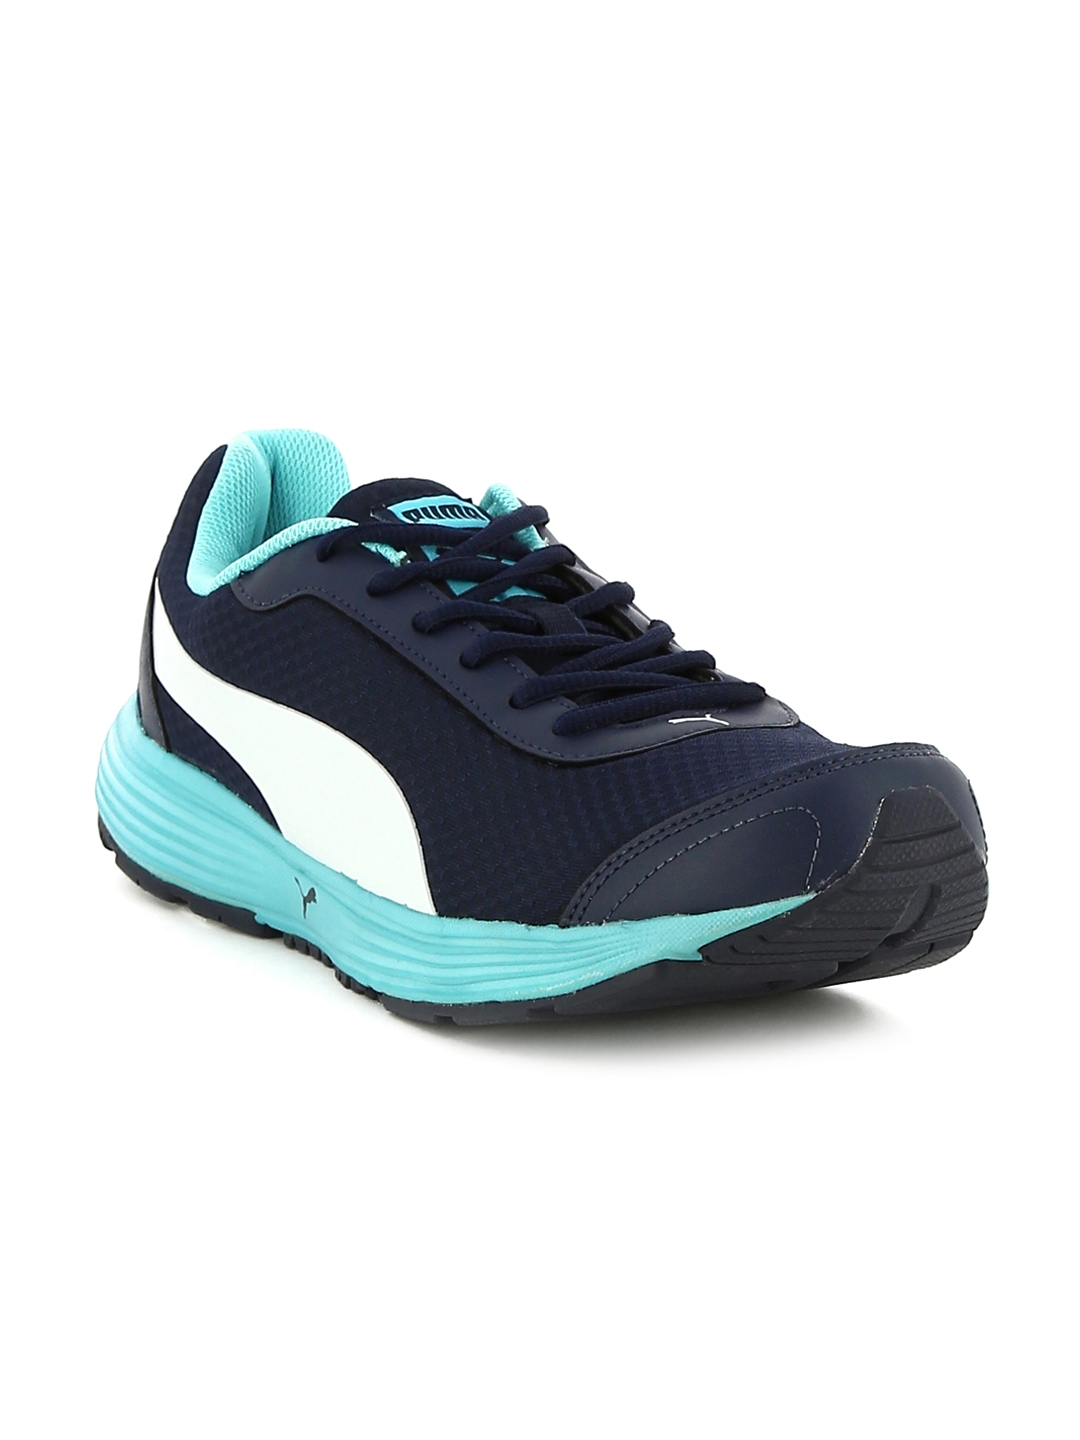 aef63d43a61dde Buy Puma Men Navy Reef Fashion Running Shoes - Sports Shoes for Men ...